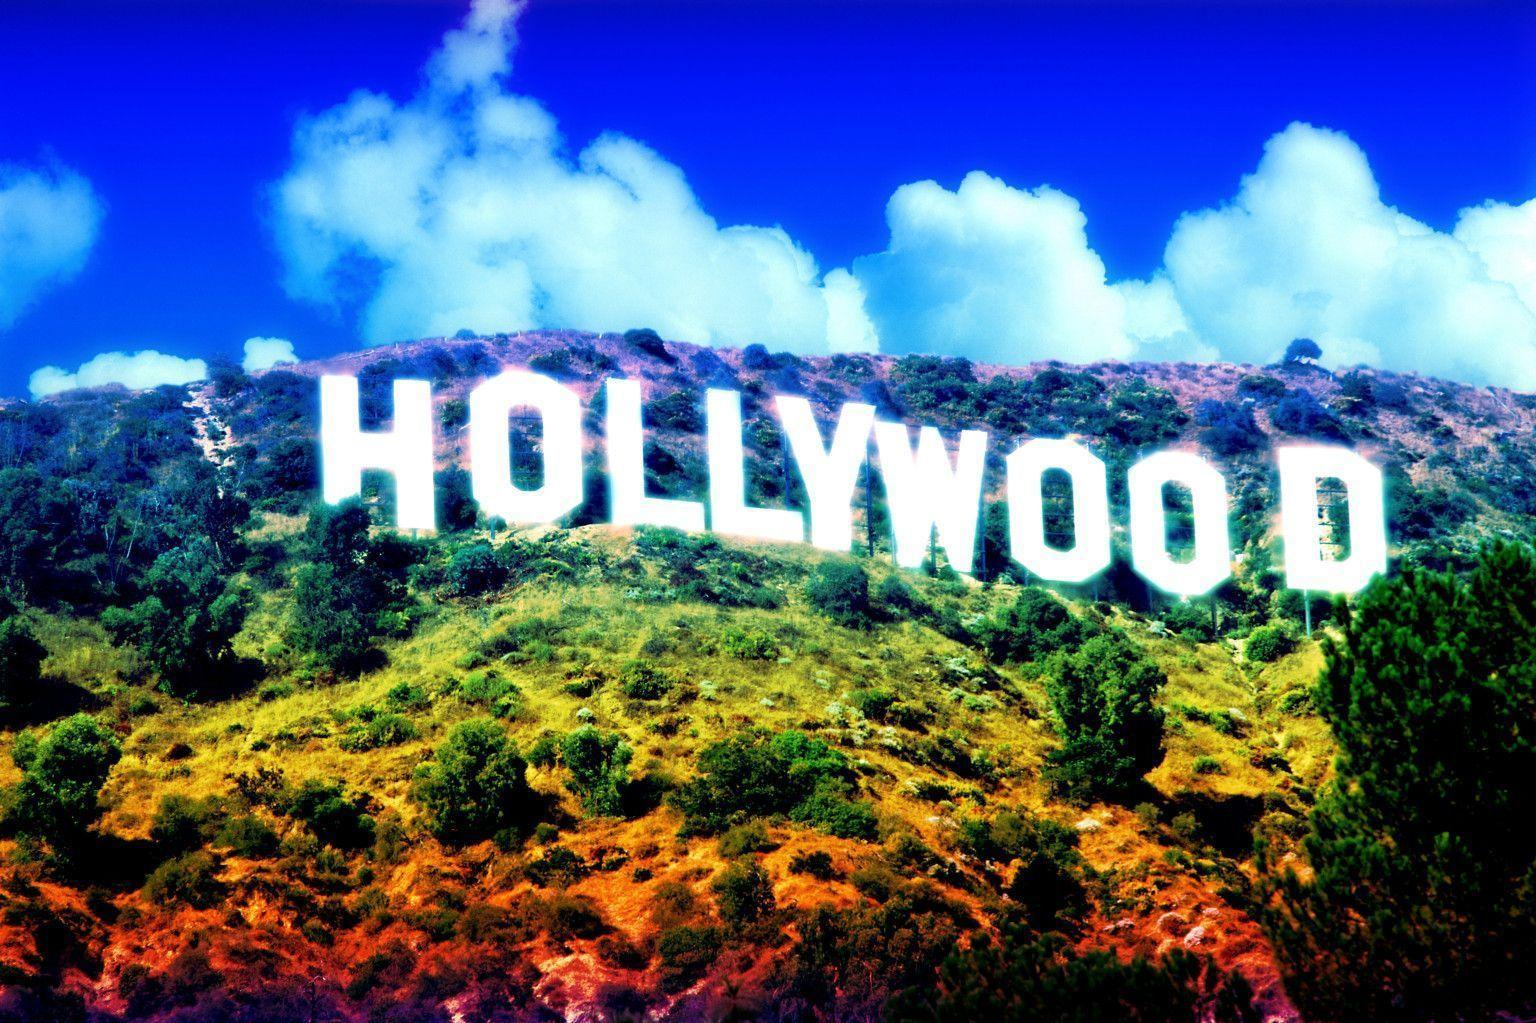 wallpapers a hollywood - photo #12